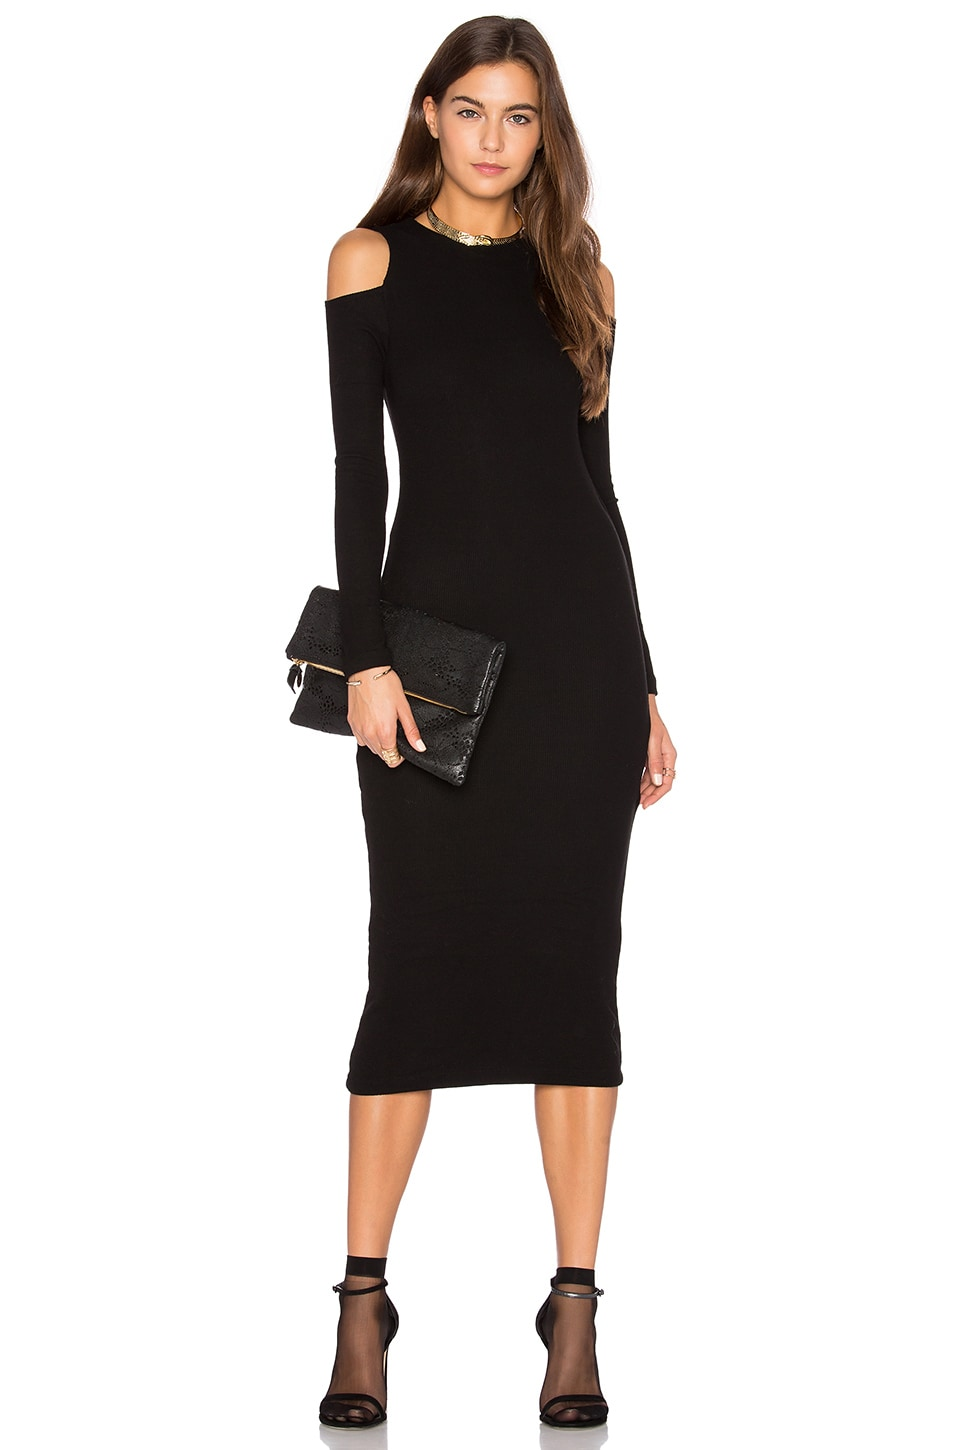 GETTINGBACKTOSQUAREONE The Cold Shoulder Dress in Black